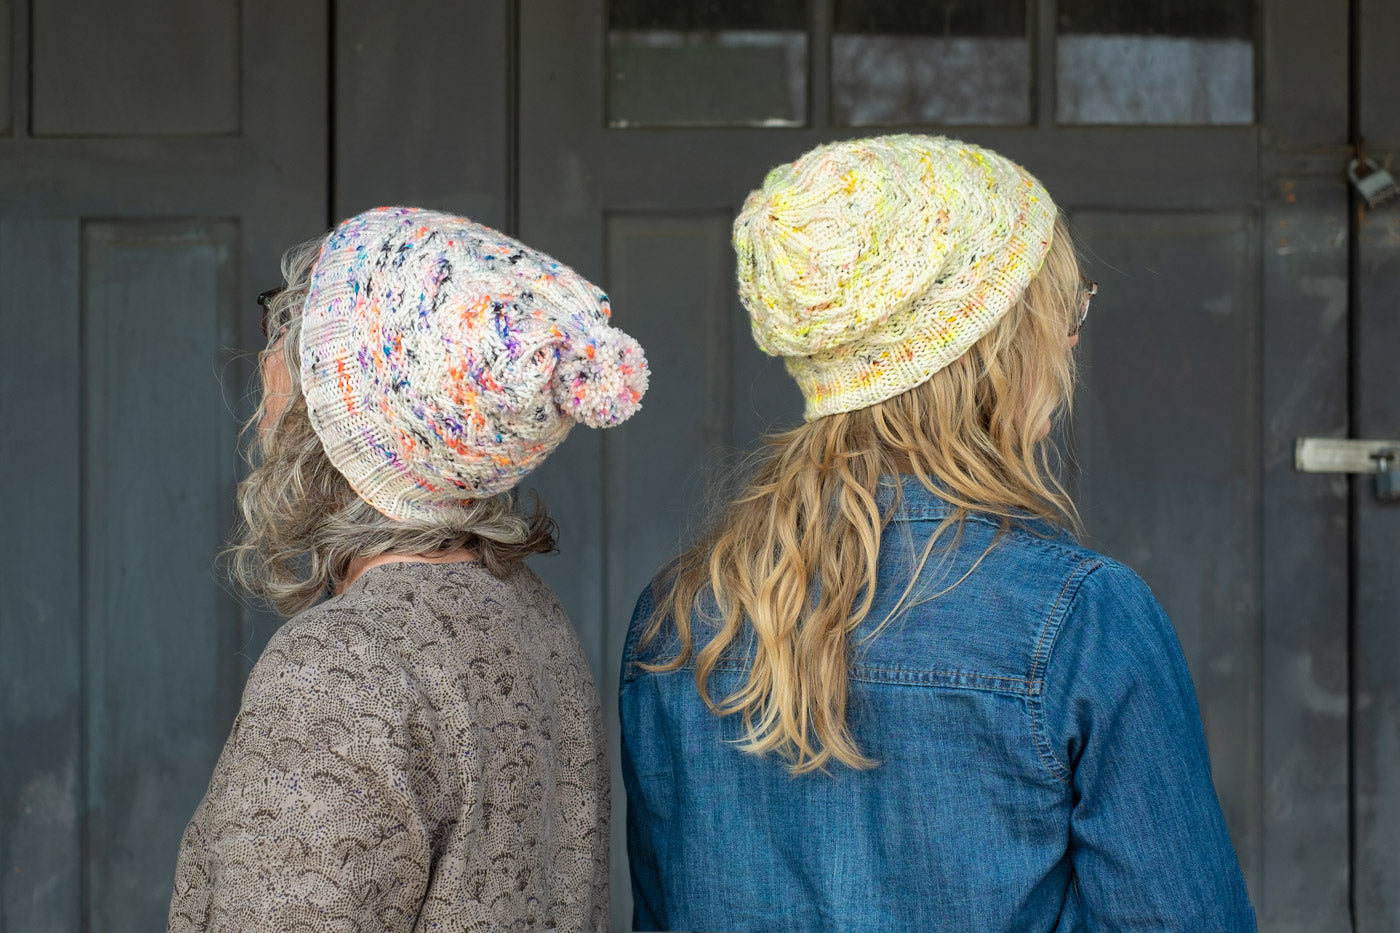 Jaime and Amber standing back to back, both wear handknits hats that are white with neon speckles, amber's is yellow speckles and Jaime's is coral, purple and blue speckles. The hats have a textured stitch.